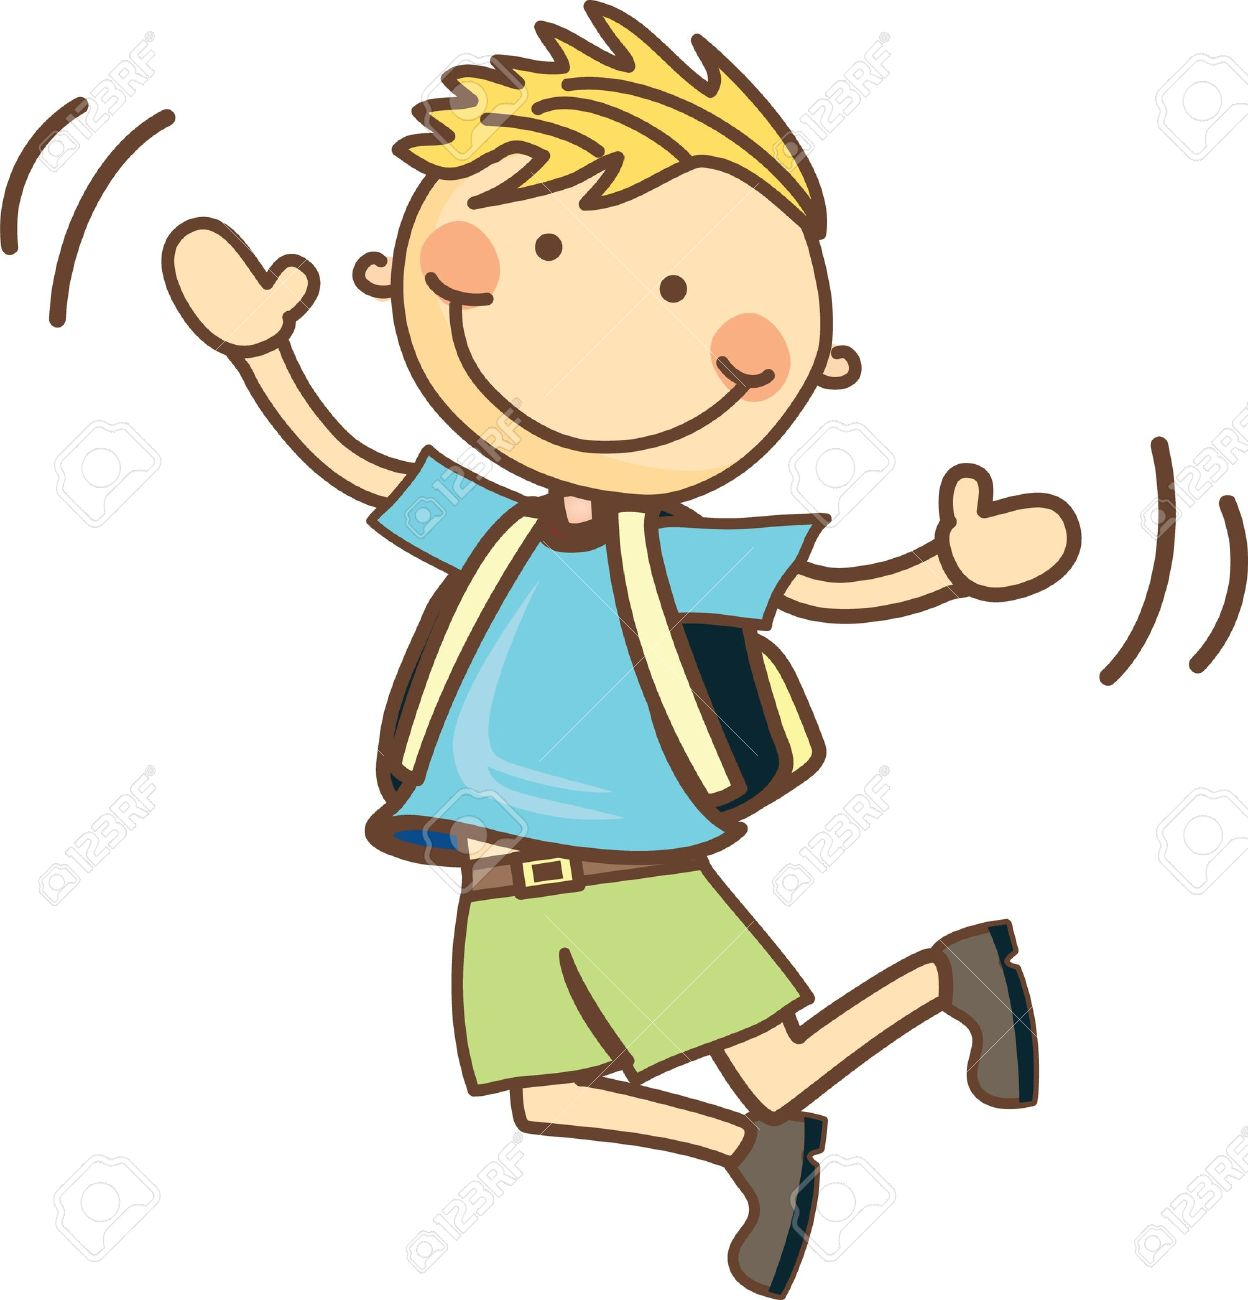 Boy . Jumping clipart